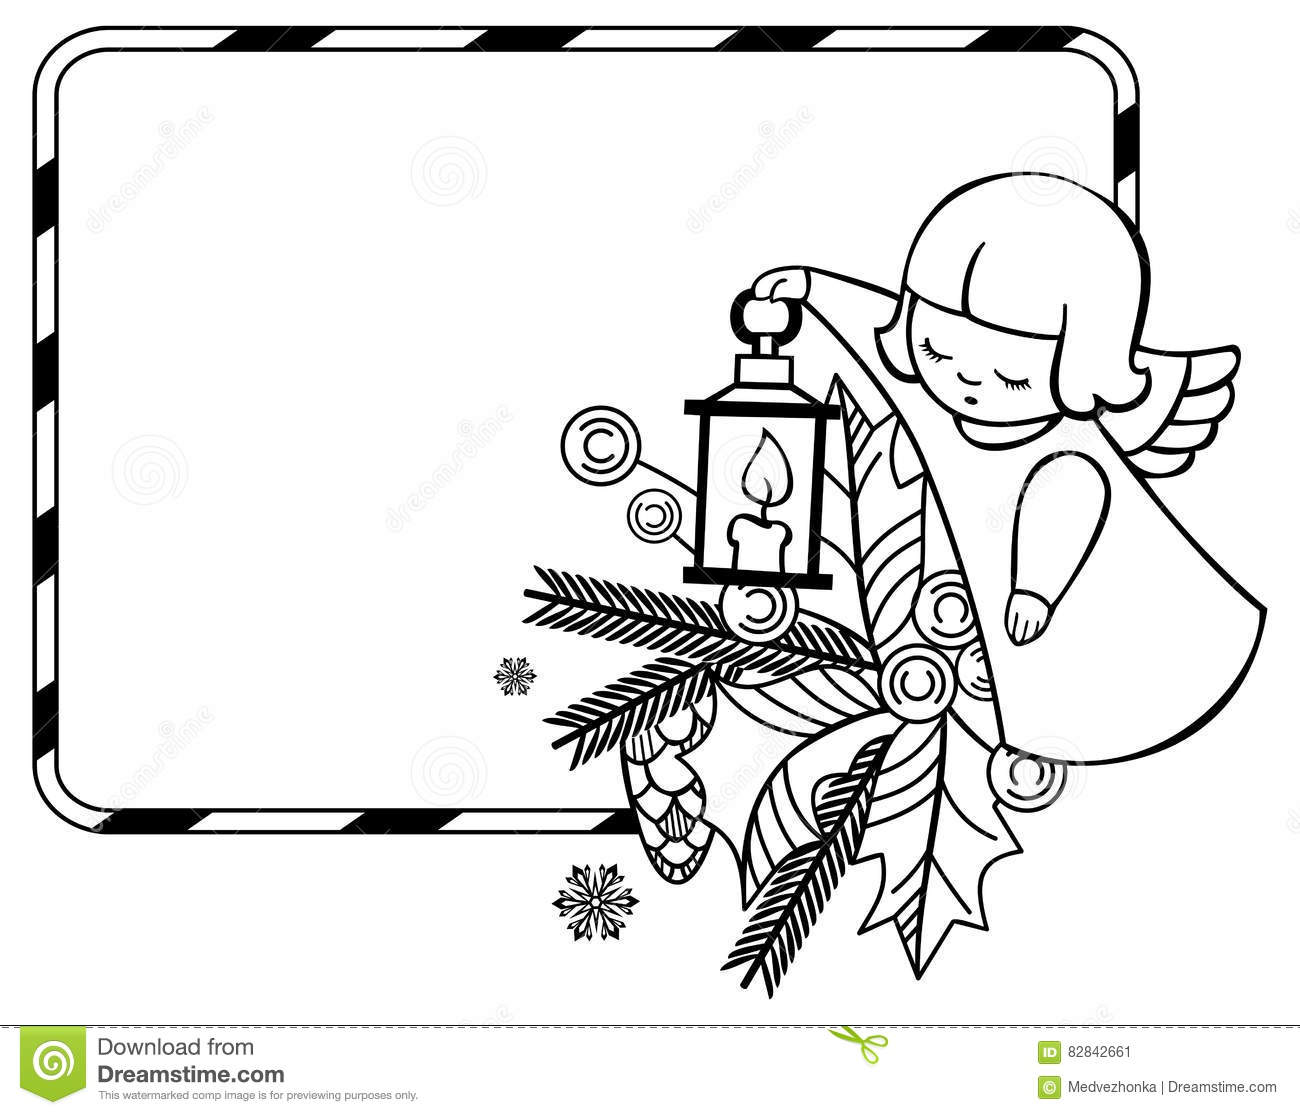 Black And White Christmas Frame With Cute Angel. Stock Illustration - Illustration of ...